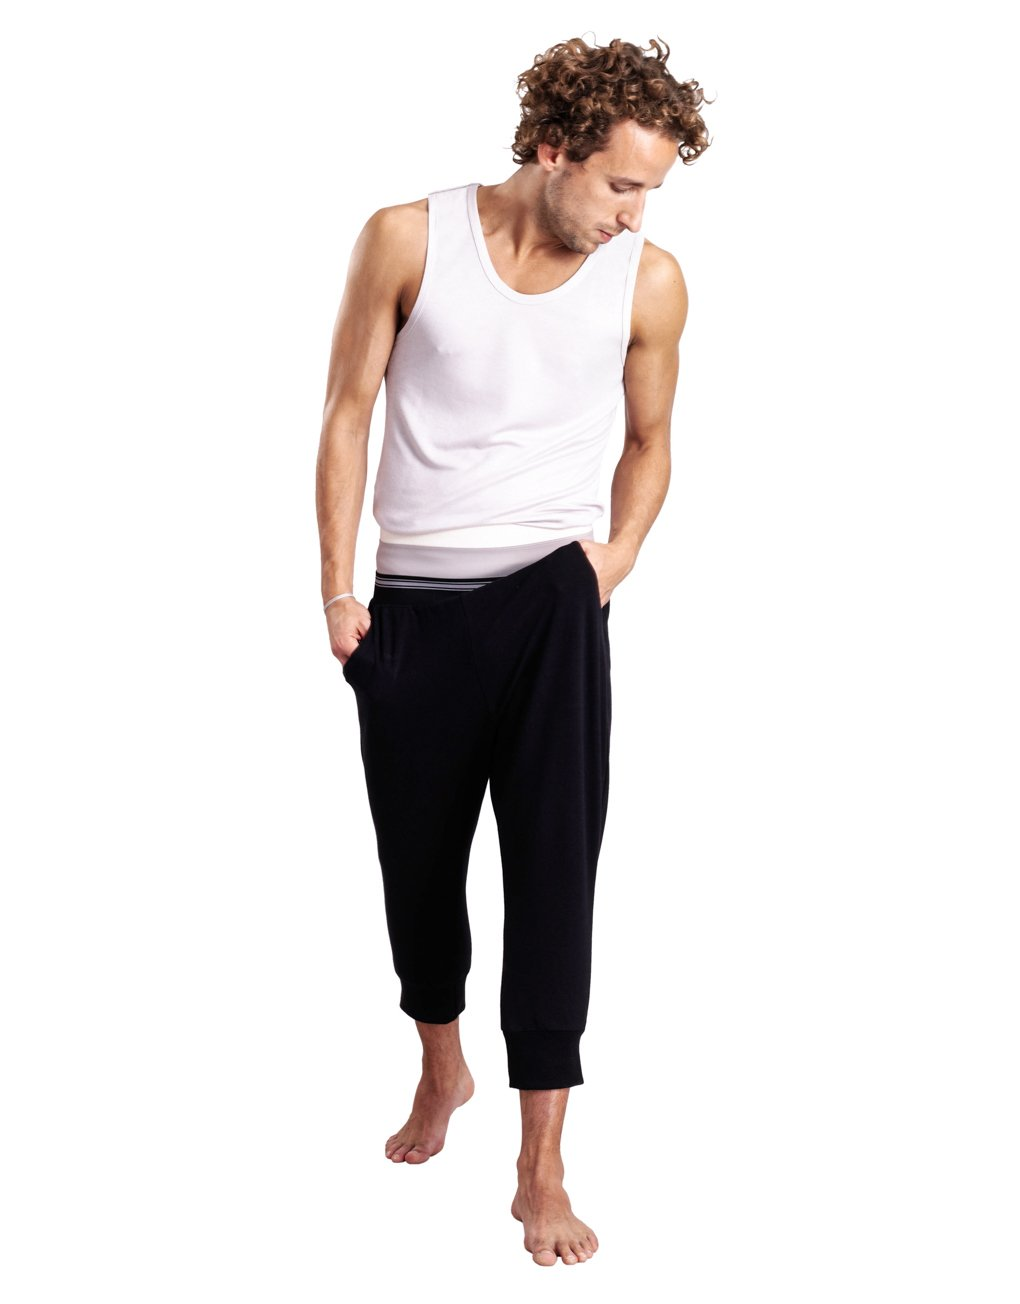 Moonlight 3/4 Unisex Cotton Pants